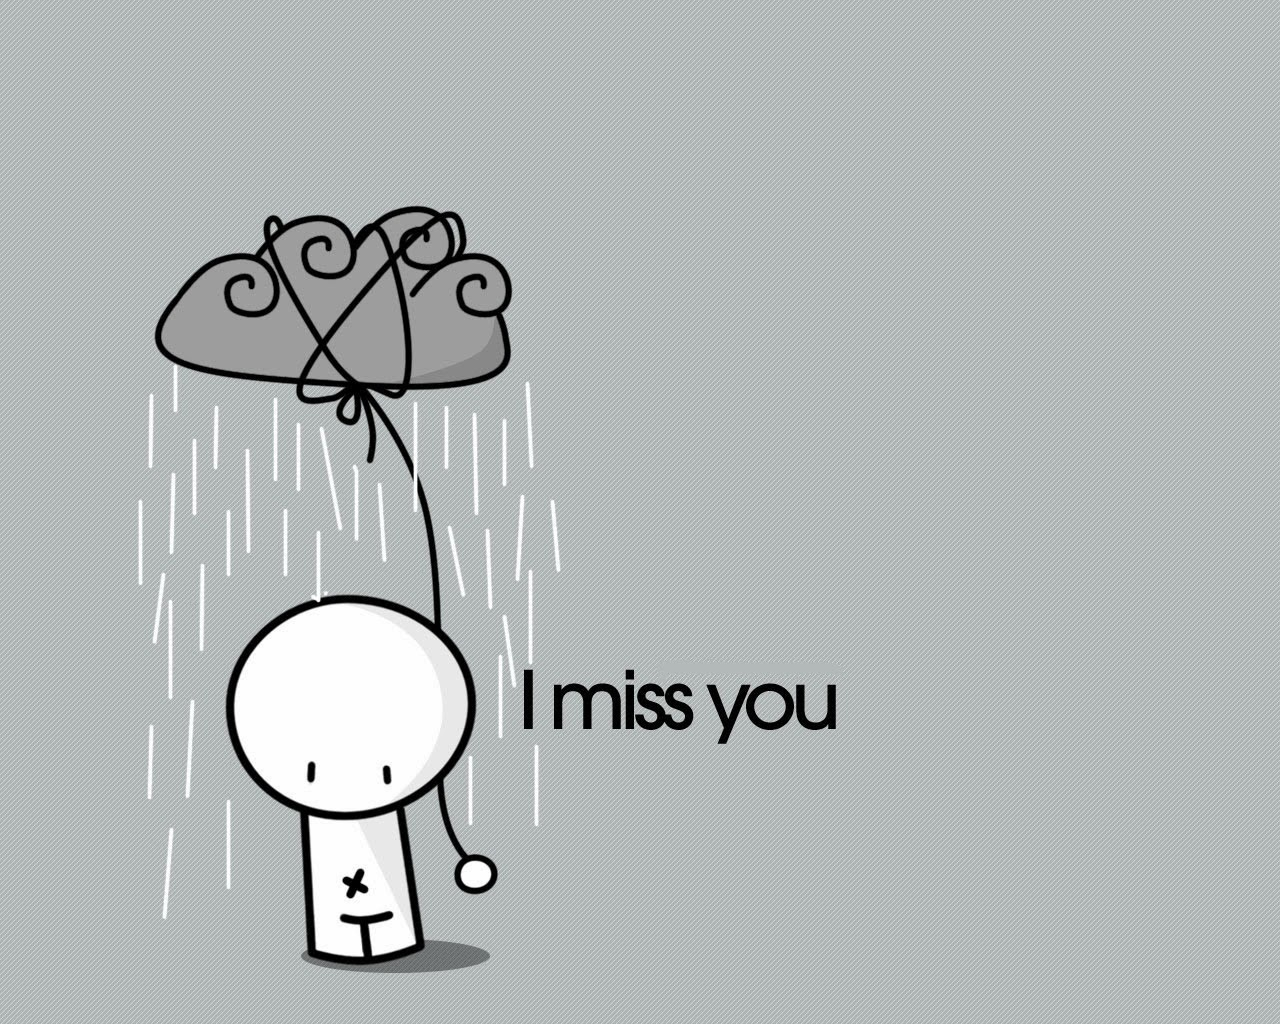 Love Miss You Wallpaper Hd : Missing Beats of Life: Miss You HD Wallpapers and Images